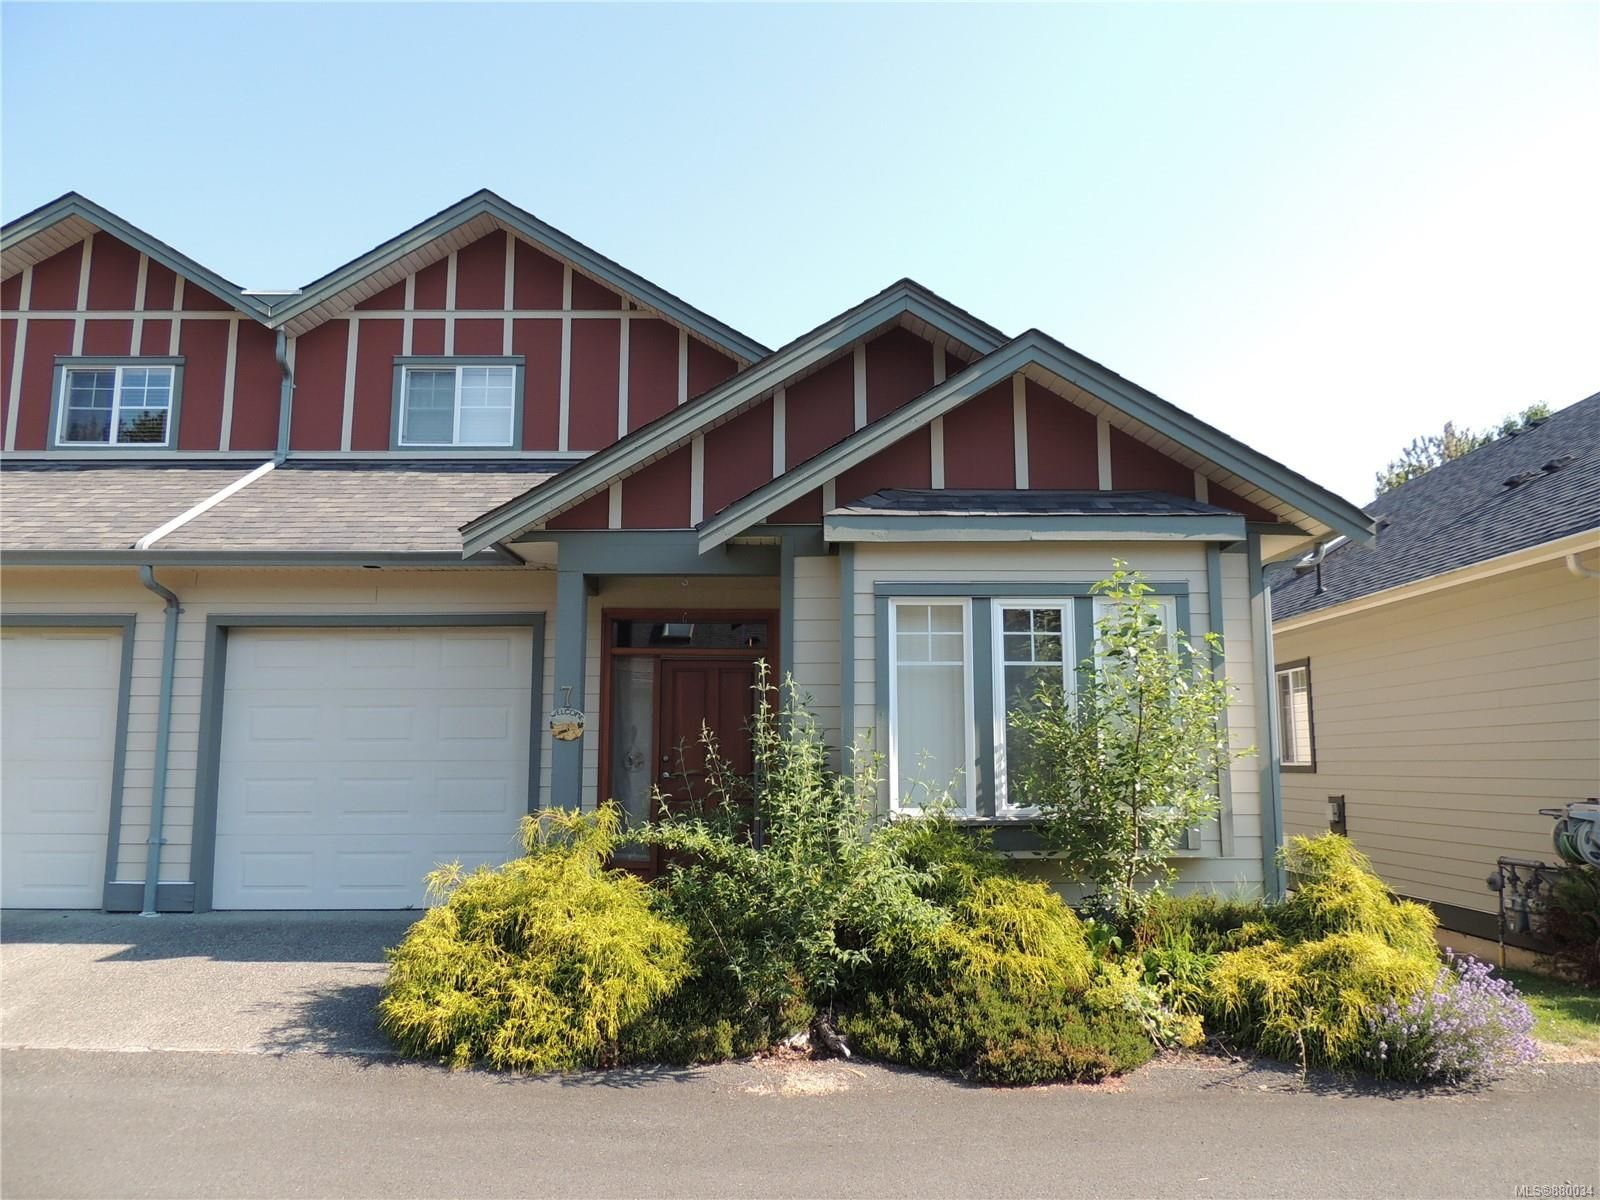 Main Photo: 7 131 McKinstry Rd in : Du East Duncan Row/Townhouse for sale (Duncan)  : MLS®# 880034